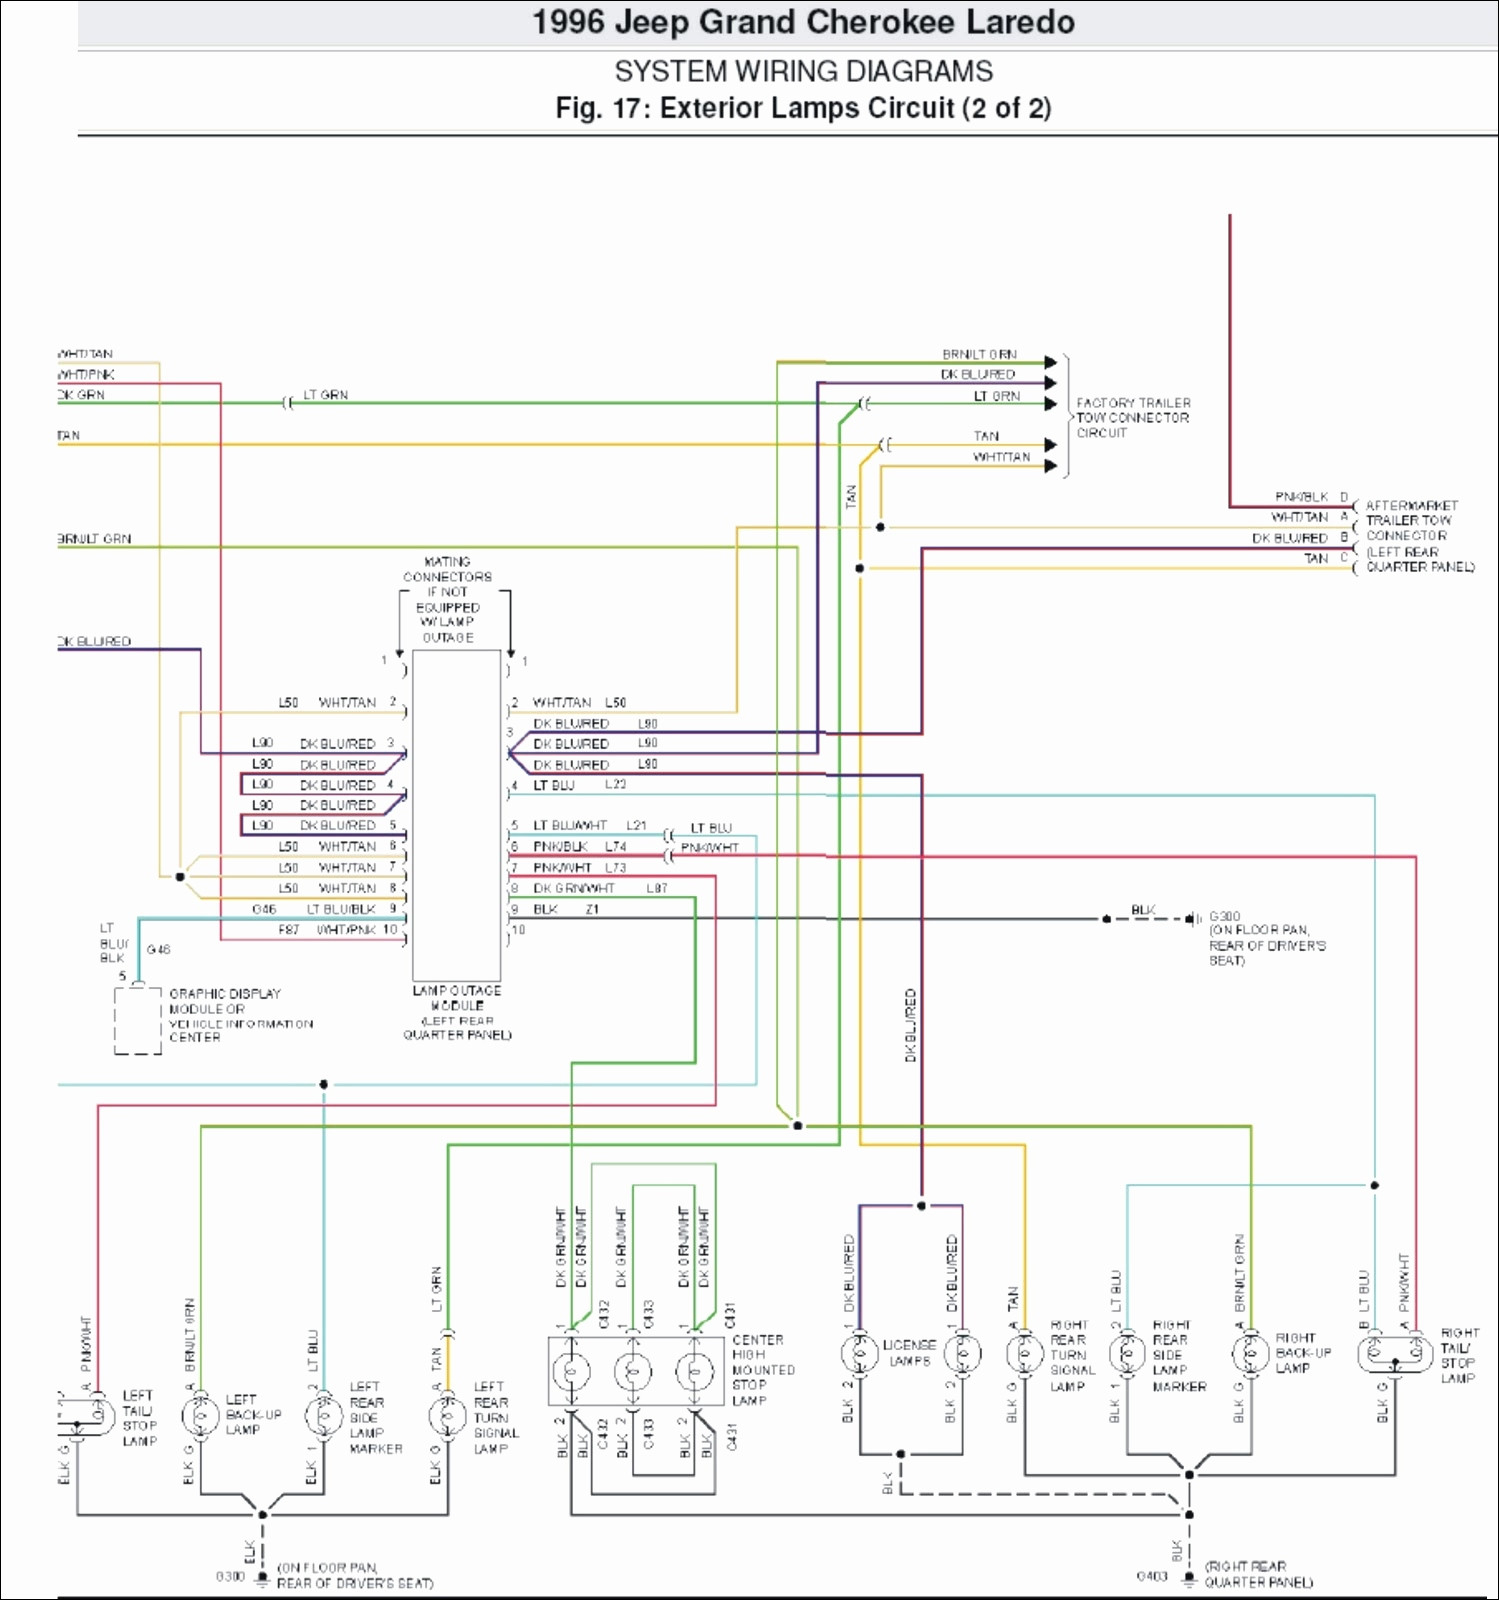 2Wire Smoke Detector Wiring Diagram | Wiring Diagram - 2 Wire Smoke Detector Wiring Diagram